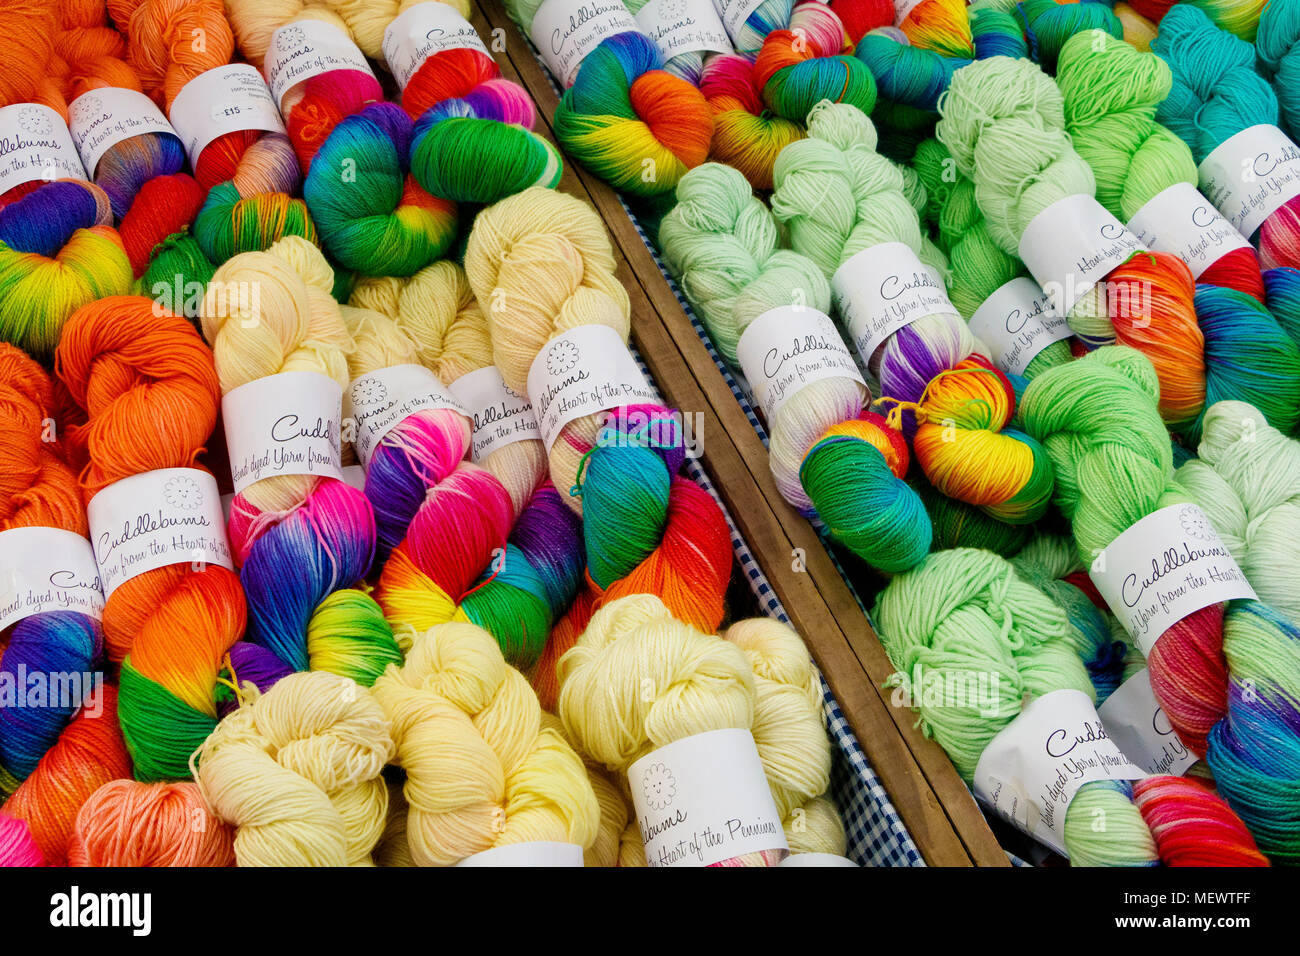 Multi-coloured skeins of wool on a retailers stall at Yarndale, Skipton, North Yorkshire, UK. - Stock Image